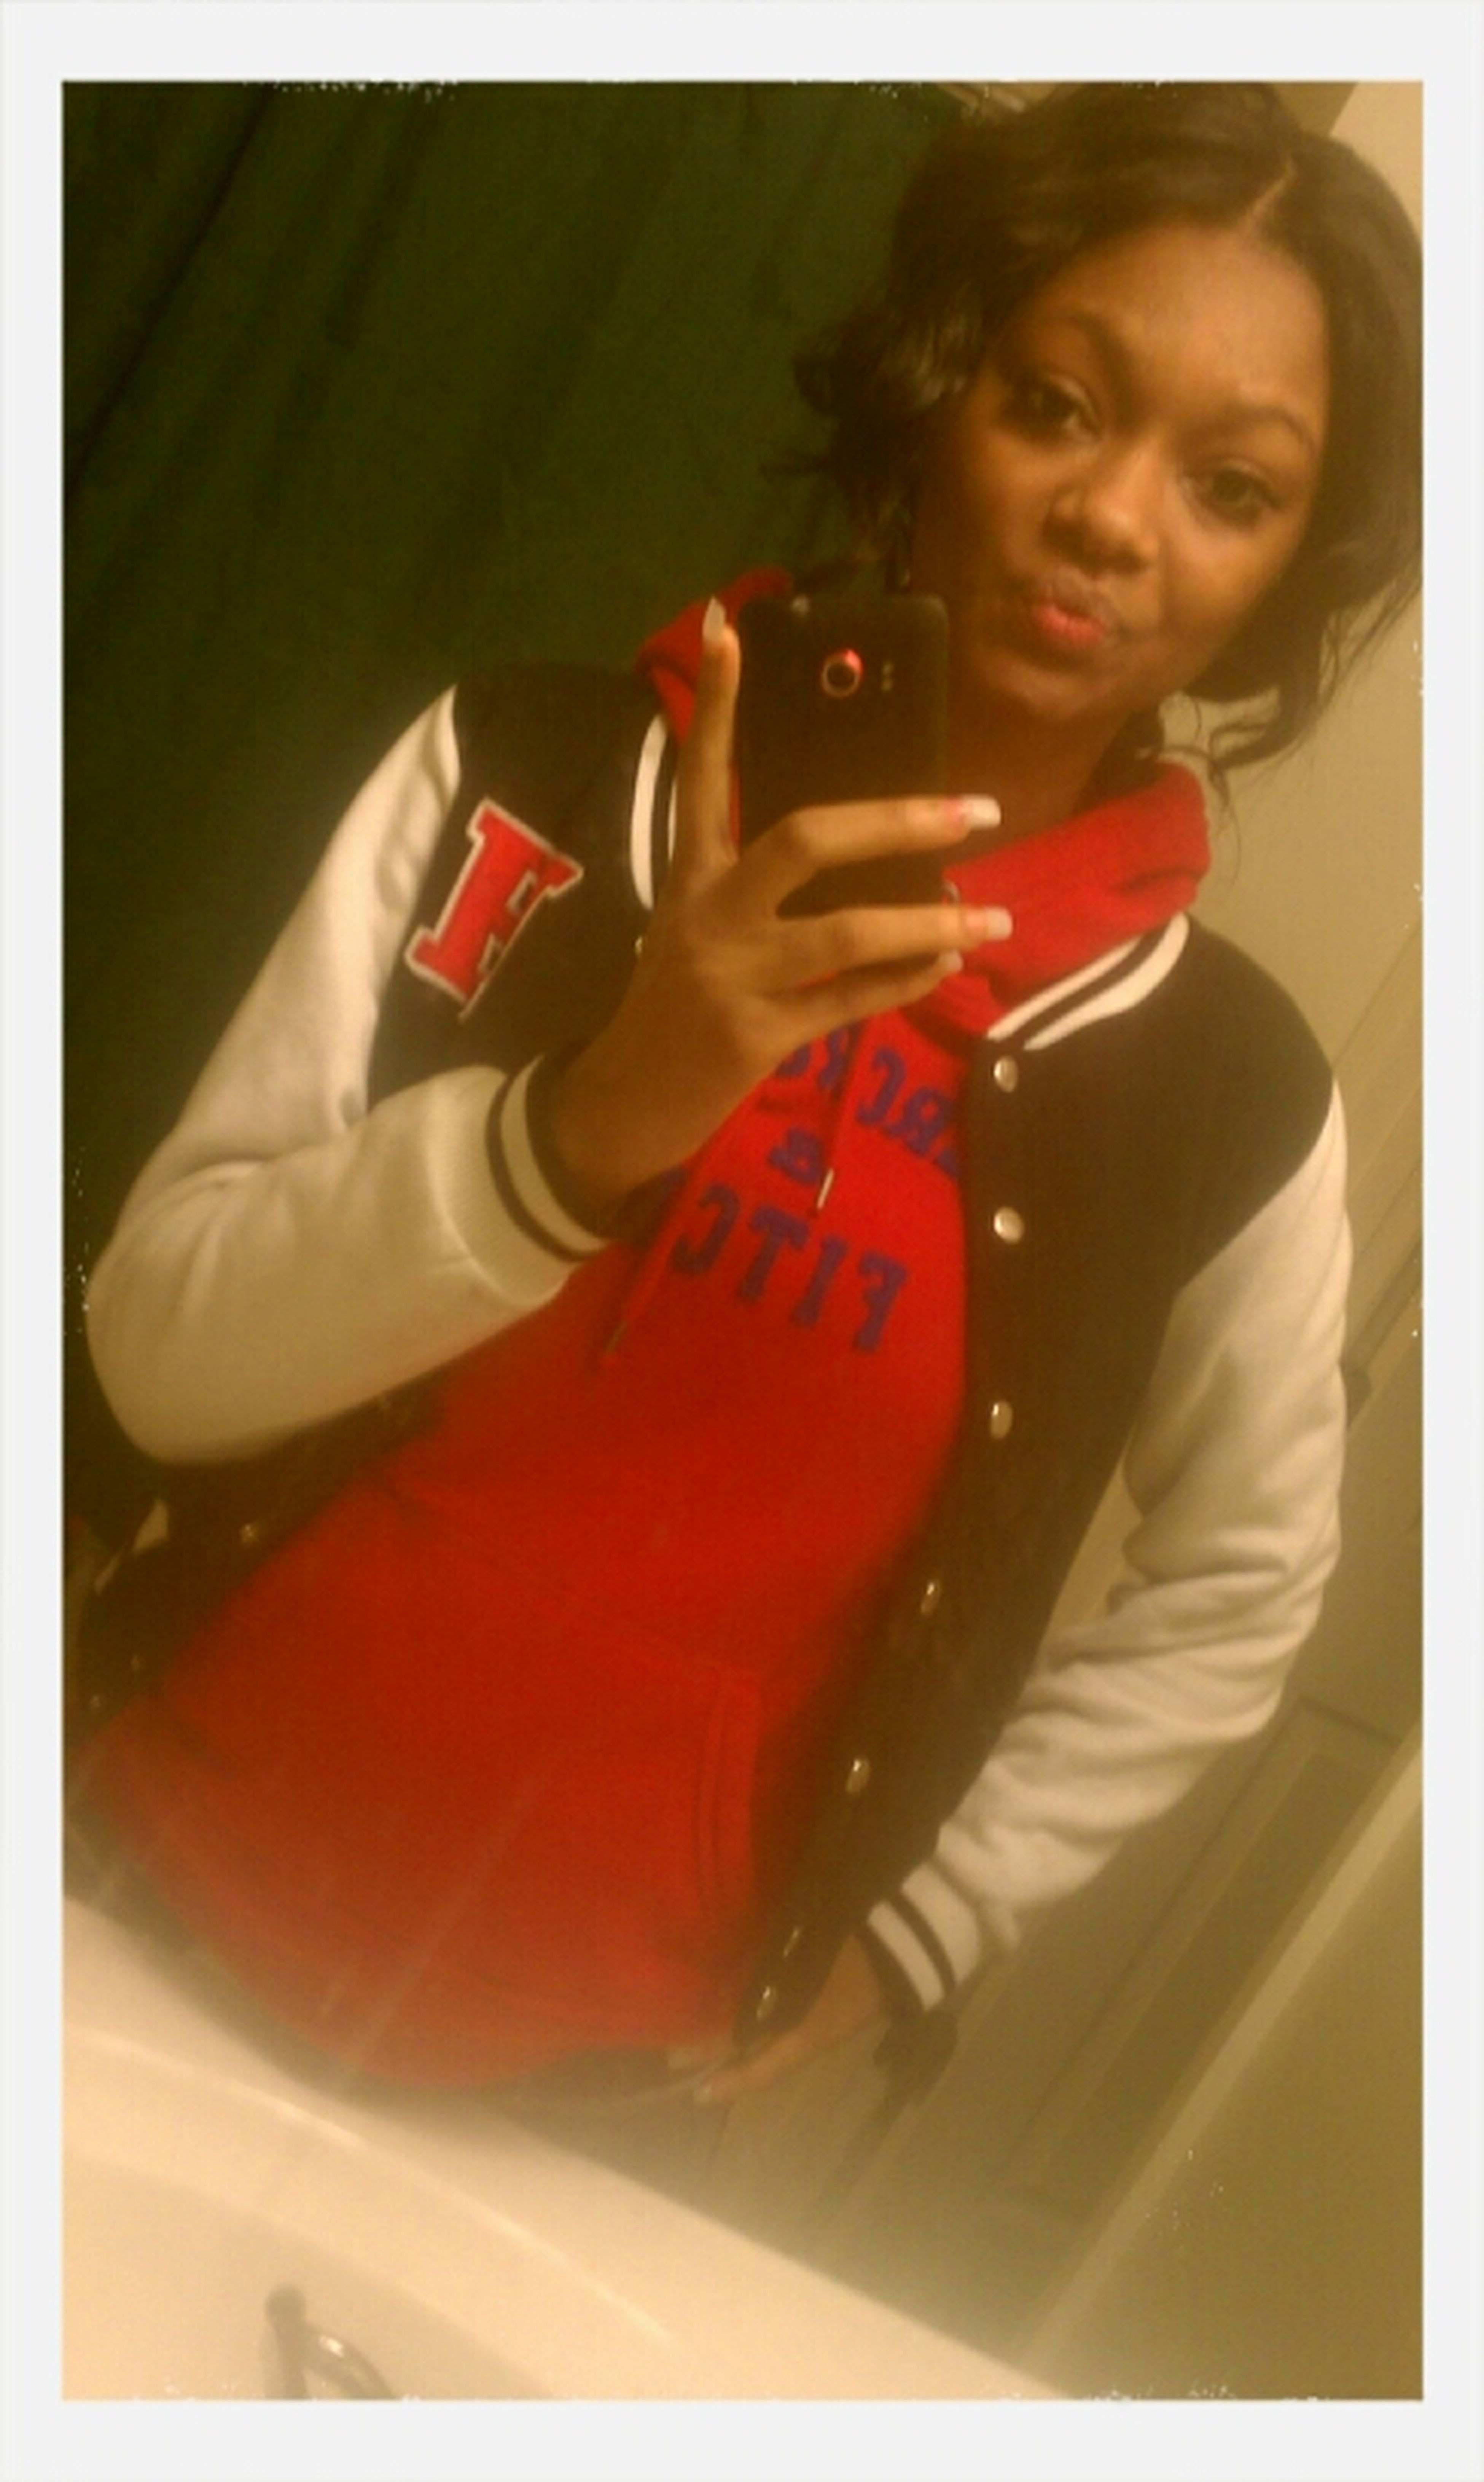 I Be On Some Chill Sht*